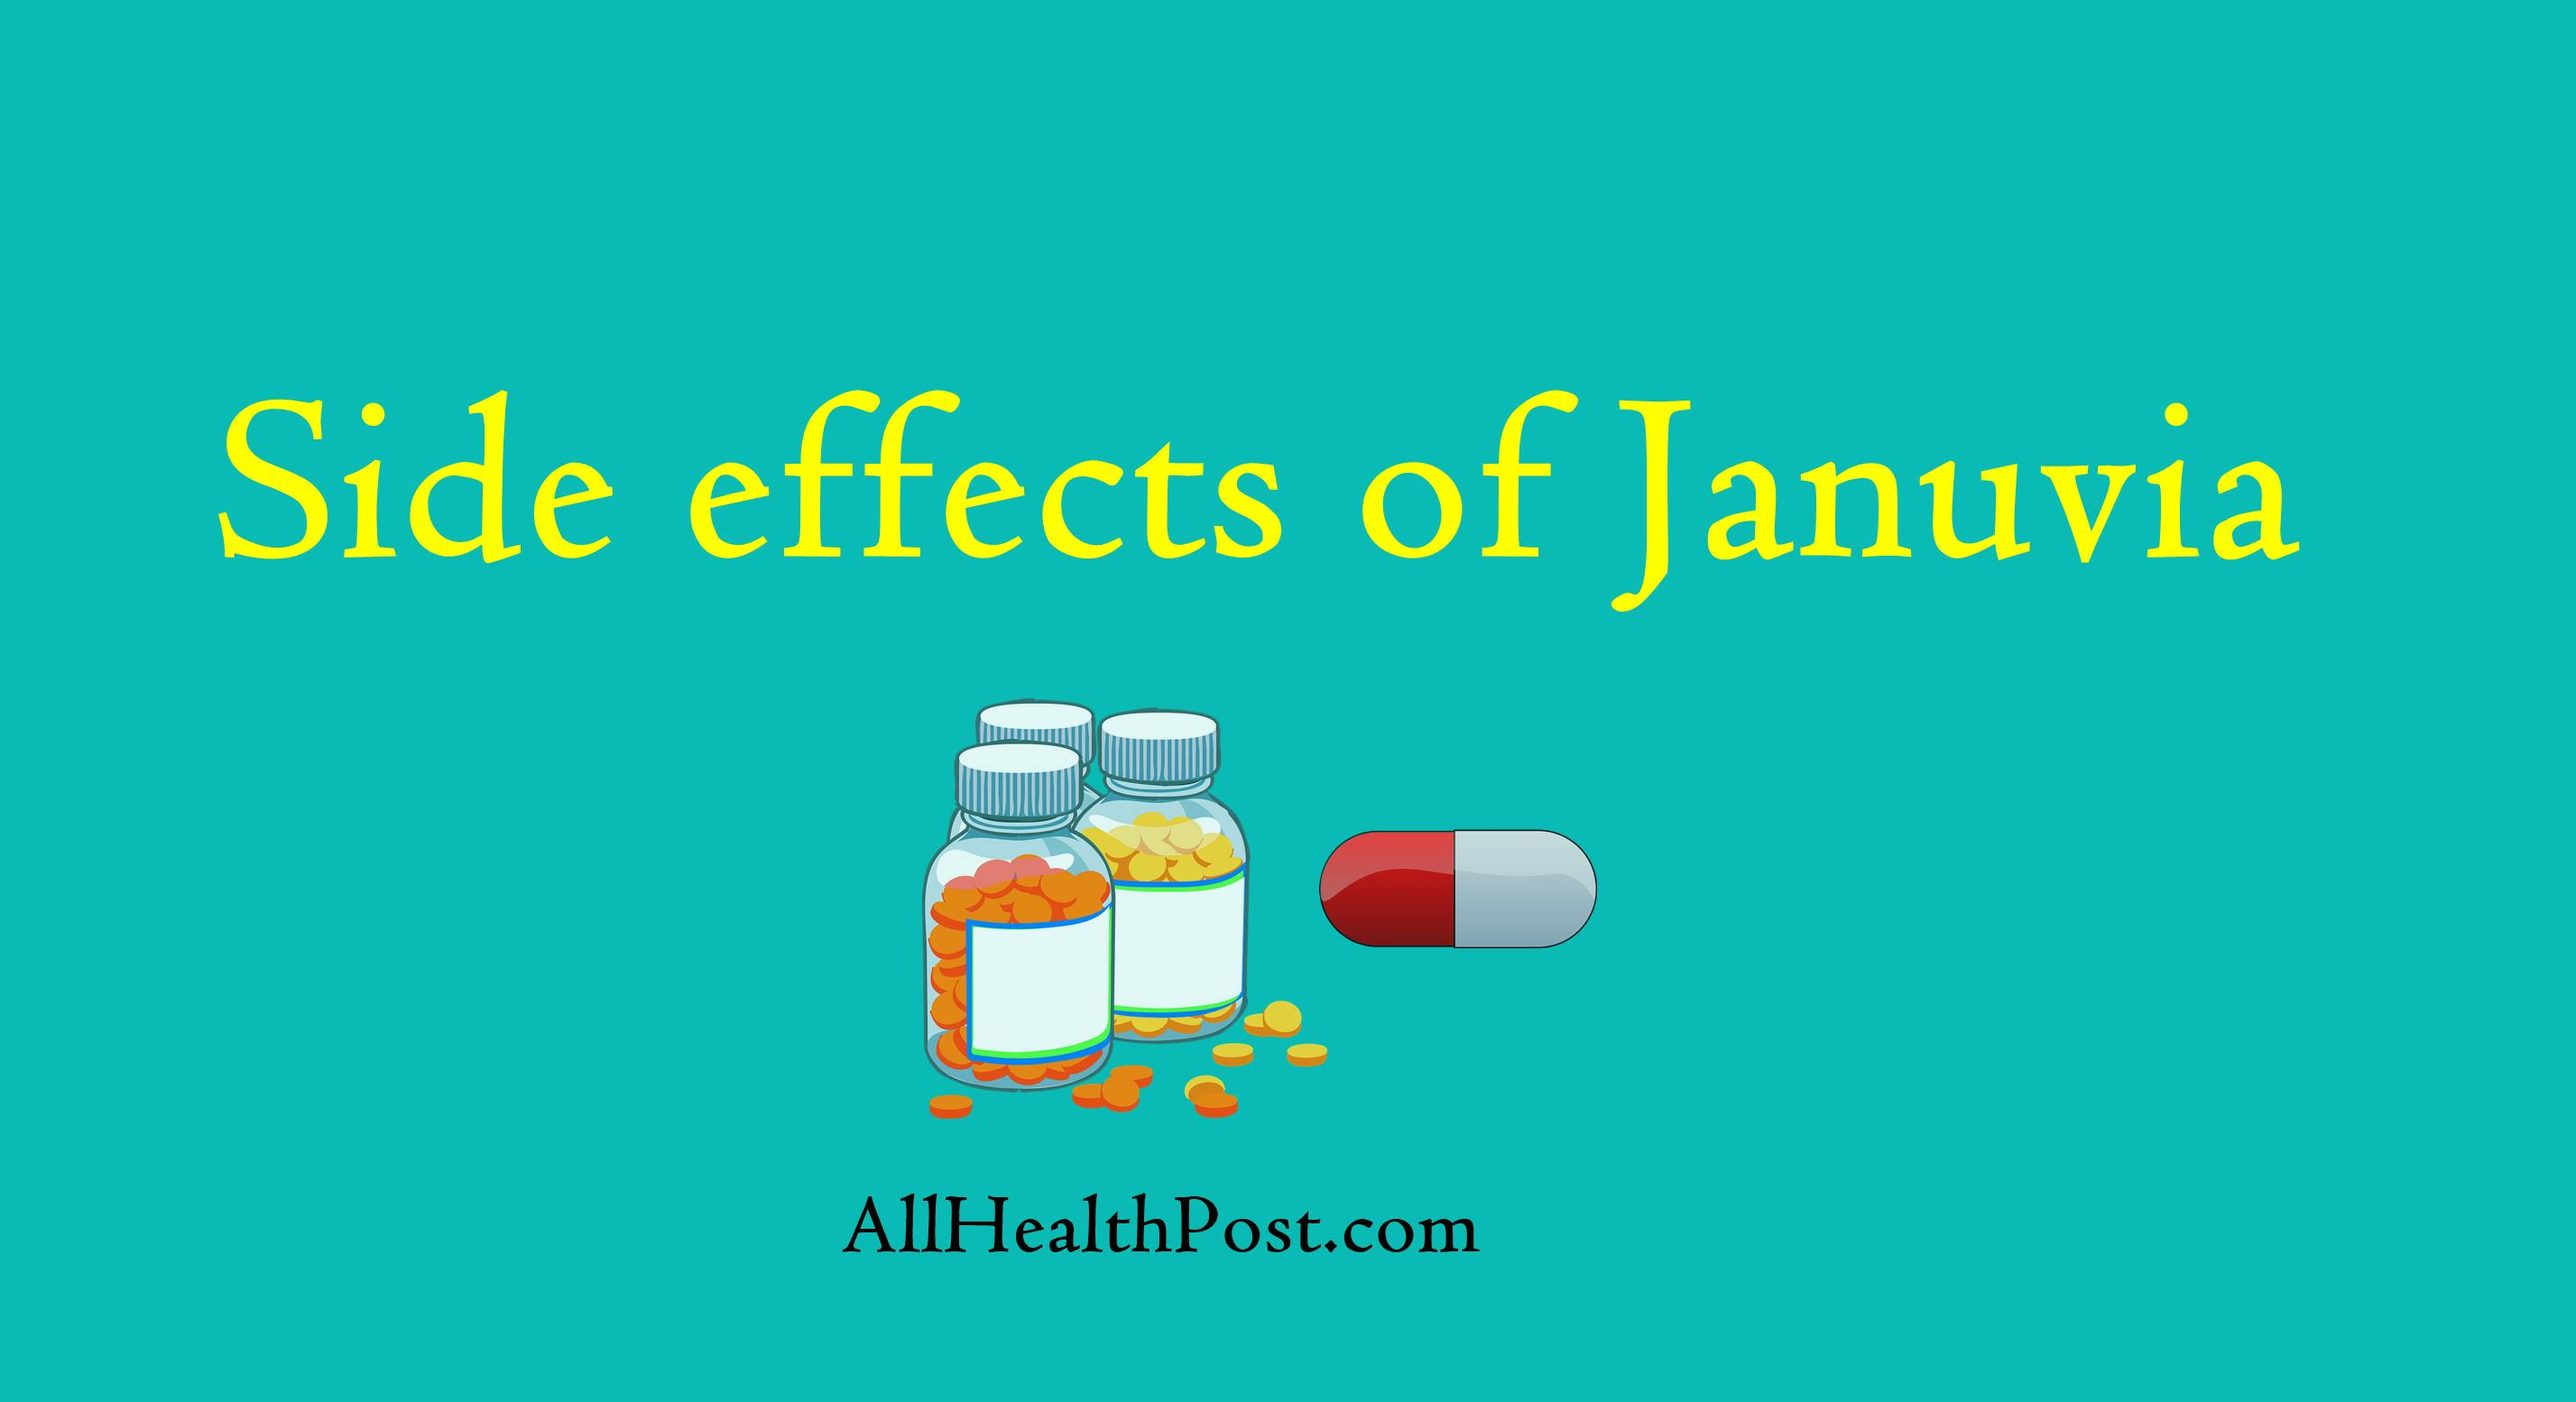 Common Side effects of Januvia